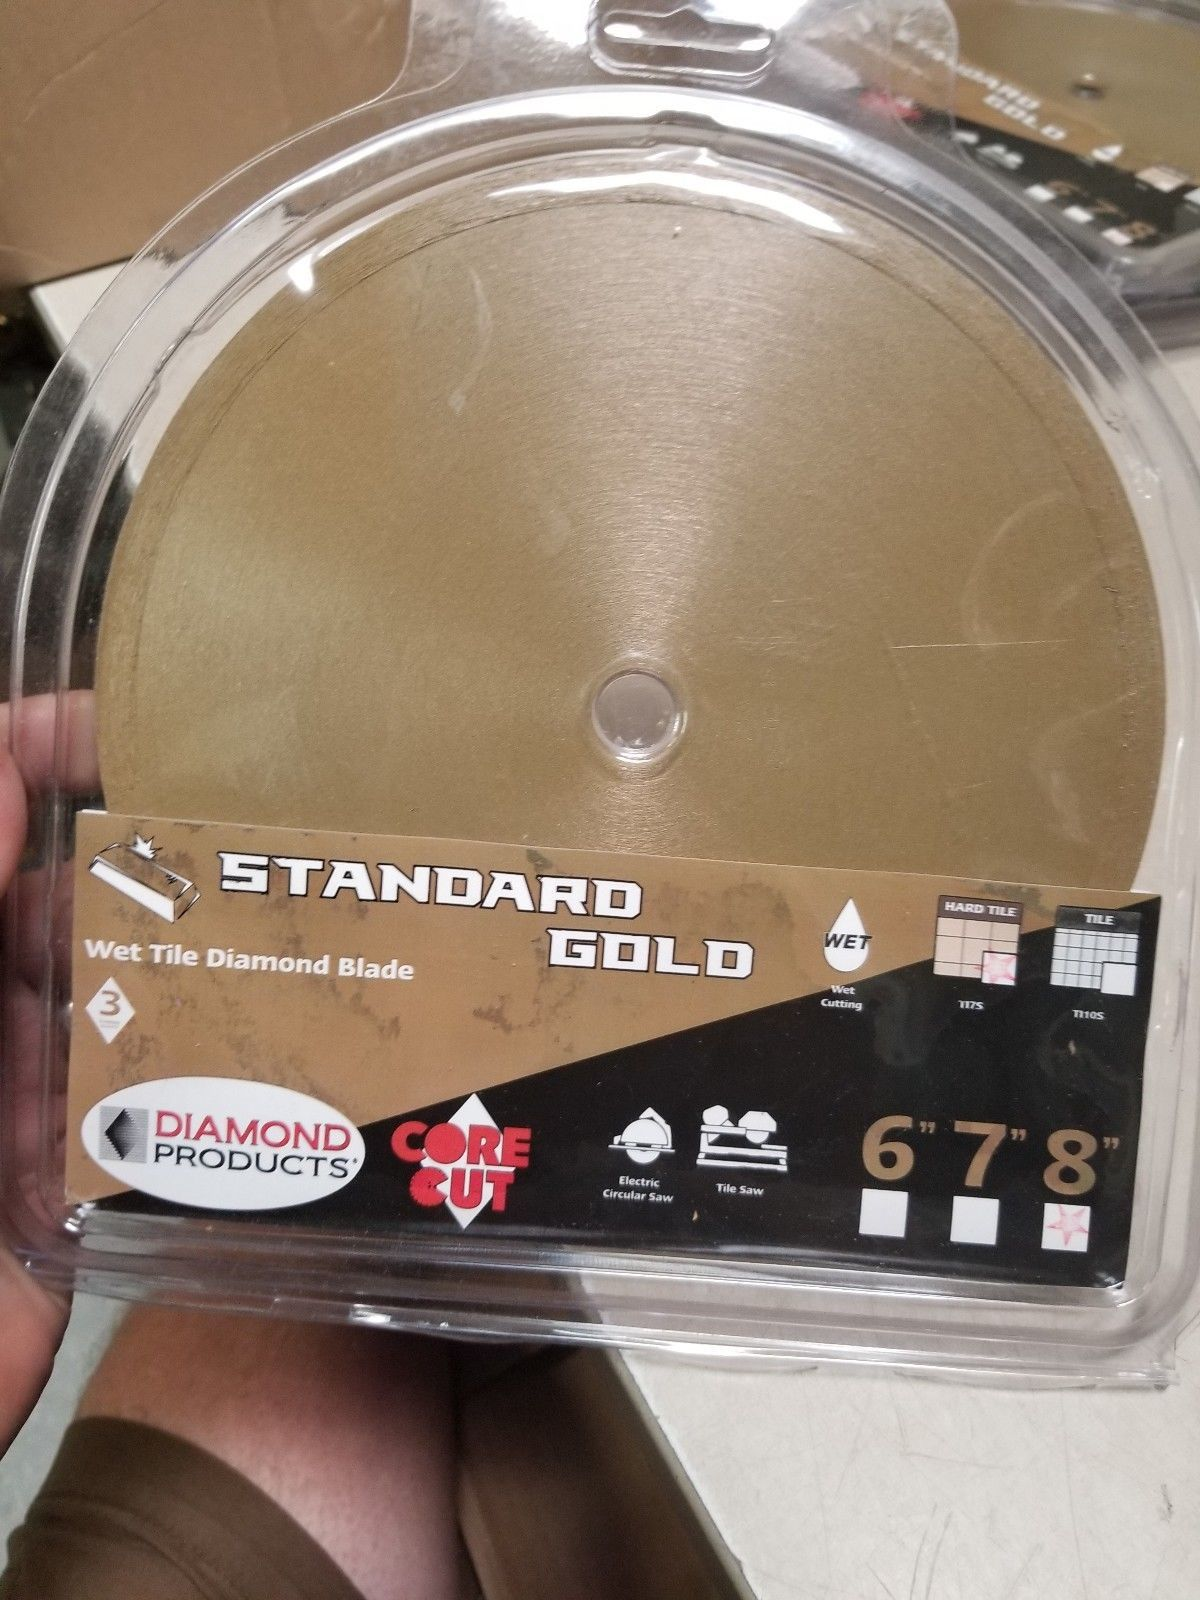 Primary image for Diamond Products Core Cut 12377 8-Inch by 0.060 Standard Gold Wet Tile Blade